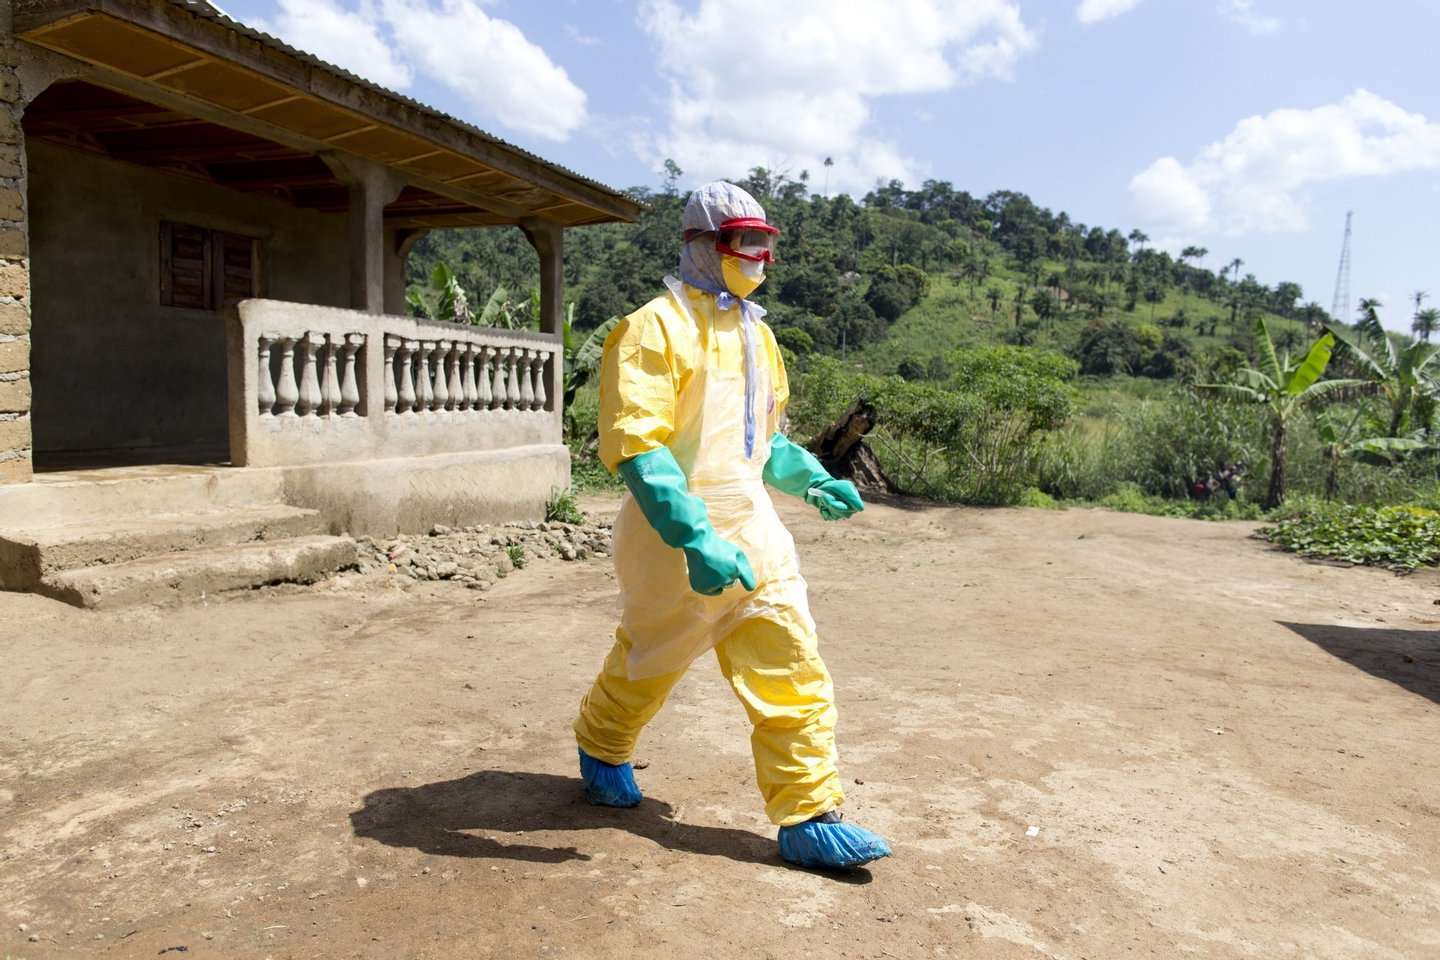 An health worker from Guinea's Red Cross wearing a Personal Protective Equipments (PPE) leaves the house of a victim of the Ebola virus in Patrice disitrict in Macenta, in Guinea on November 21, 2014.  The deadliest Ebola epidemic on record has killed more than 5,000 people in west Africa and infected almost three times that number, according to the World Health Organization. The virus emerged in Guinea at the start of the year and has infected around 1,900 Guineans, killing almost 1,200. AFP PHOTO KENZO TRIBOUILLARD        (Photo credit should read KENZO TRIBOUILLARD/AFP/Getty Images)